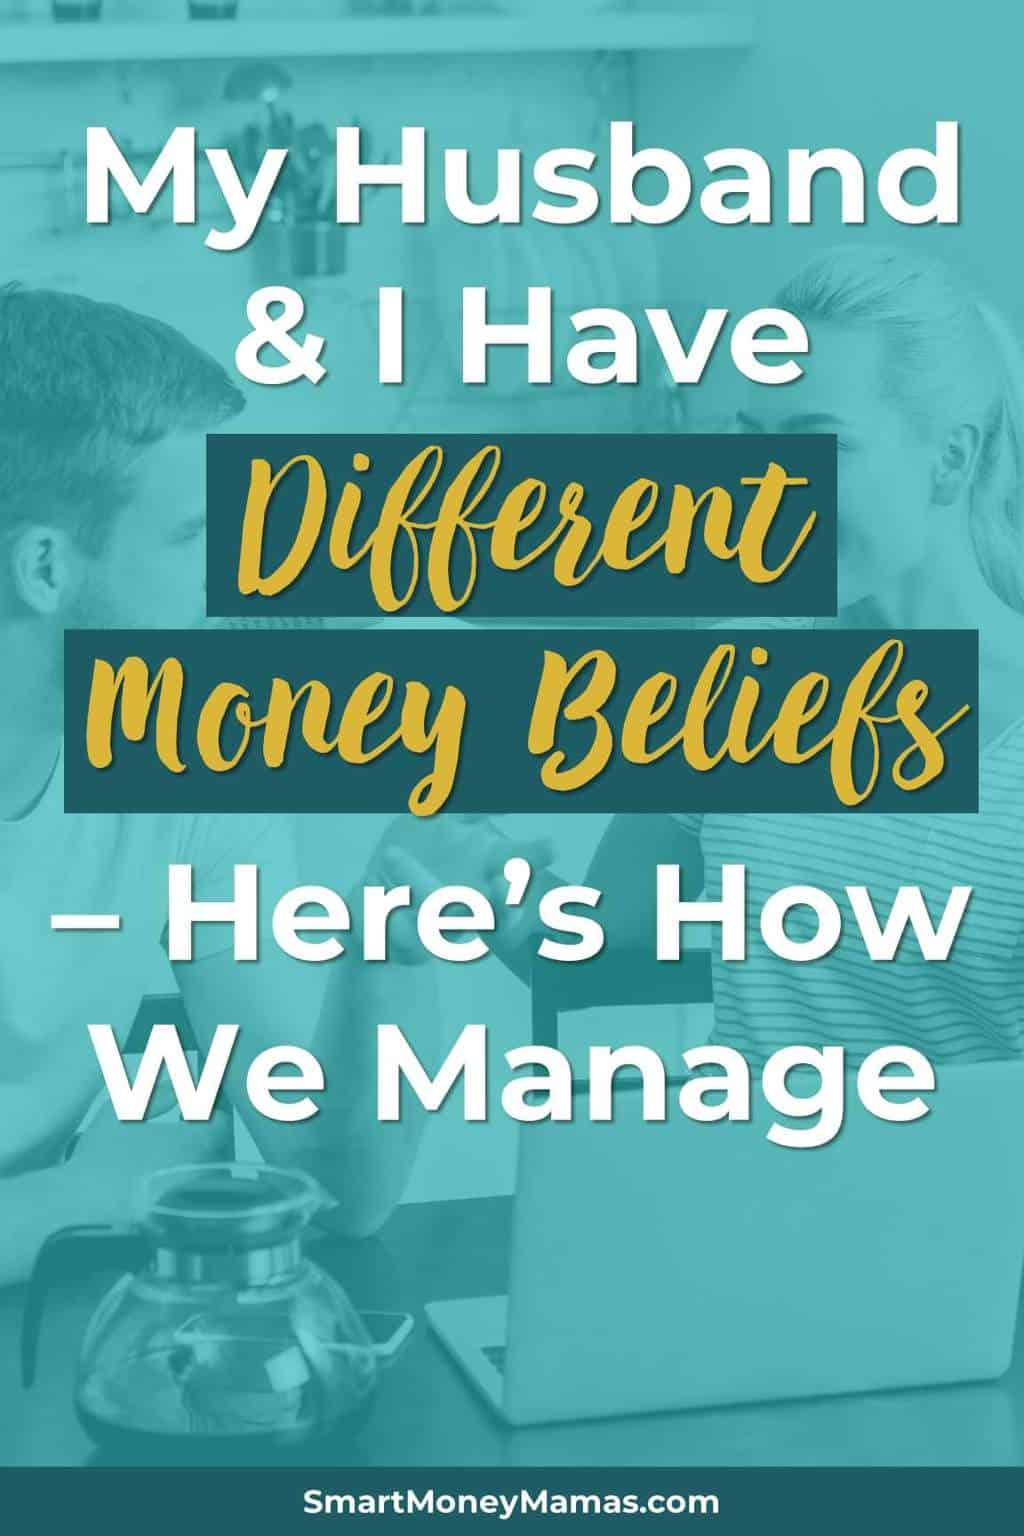 My Husband & I Have Different Money Beliefs - Here's How We Manage